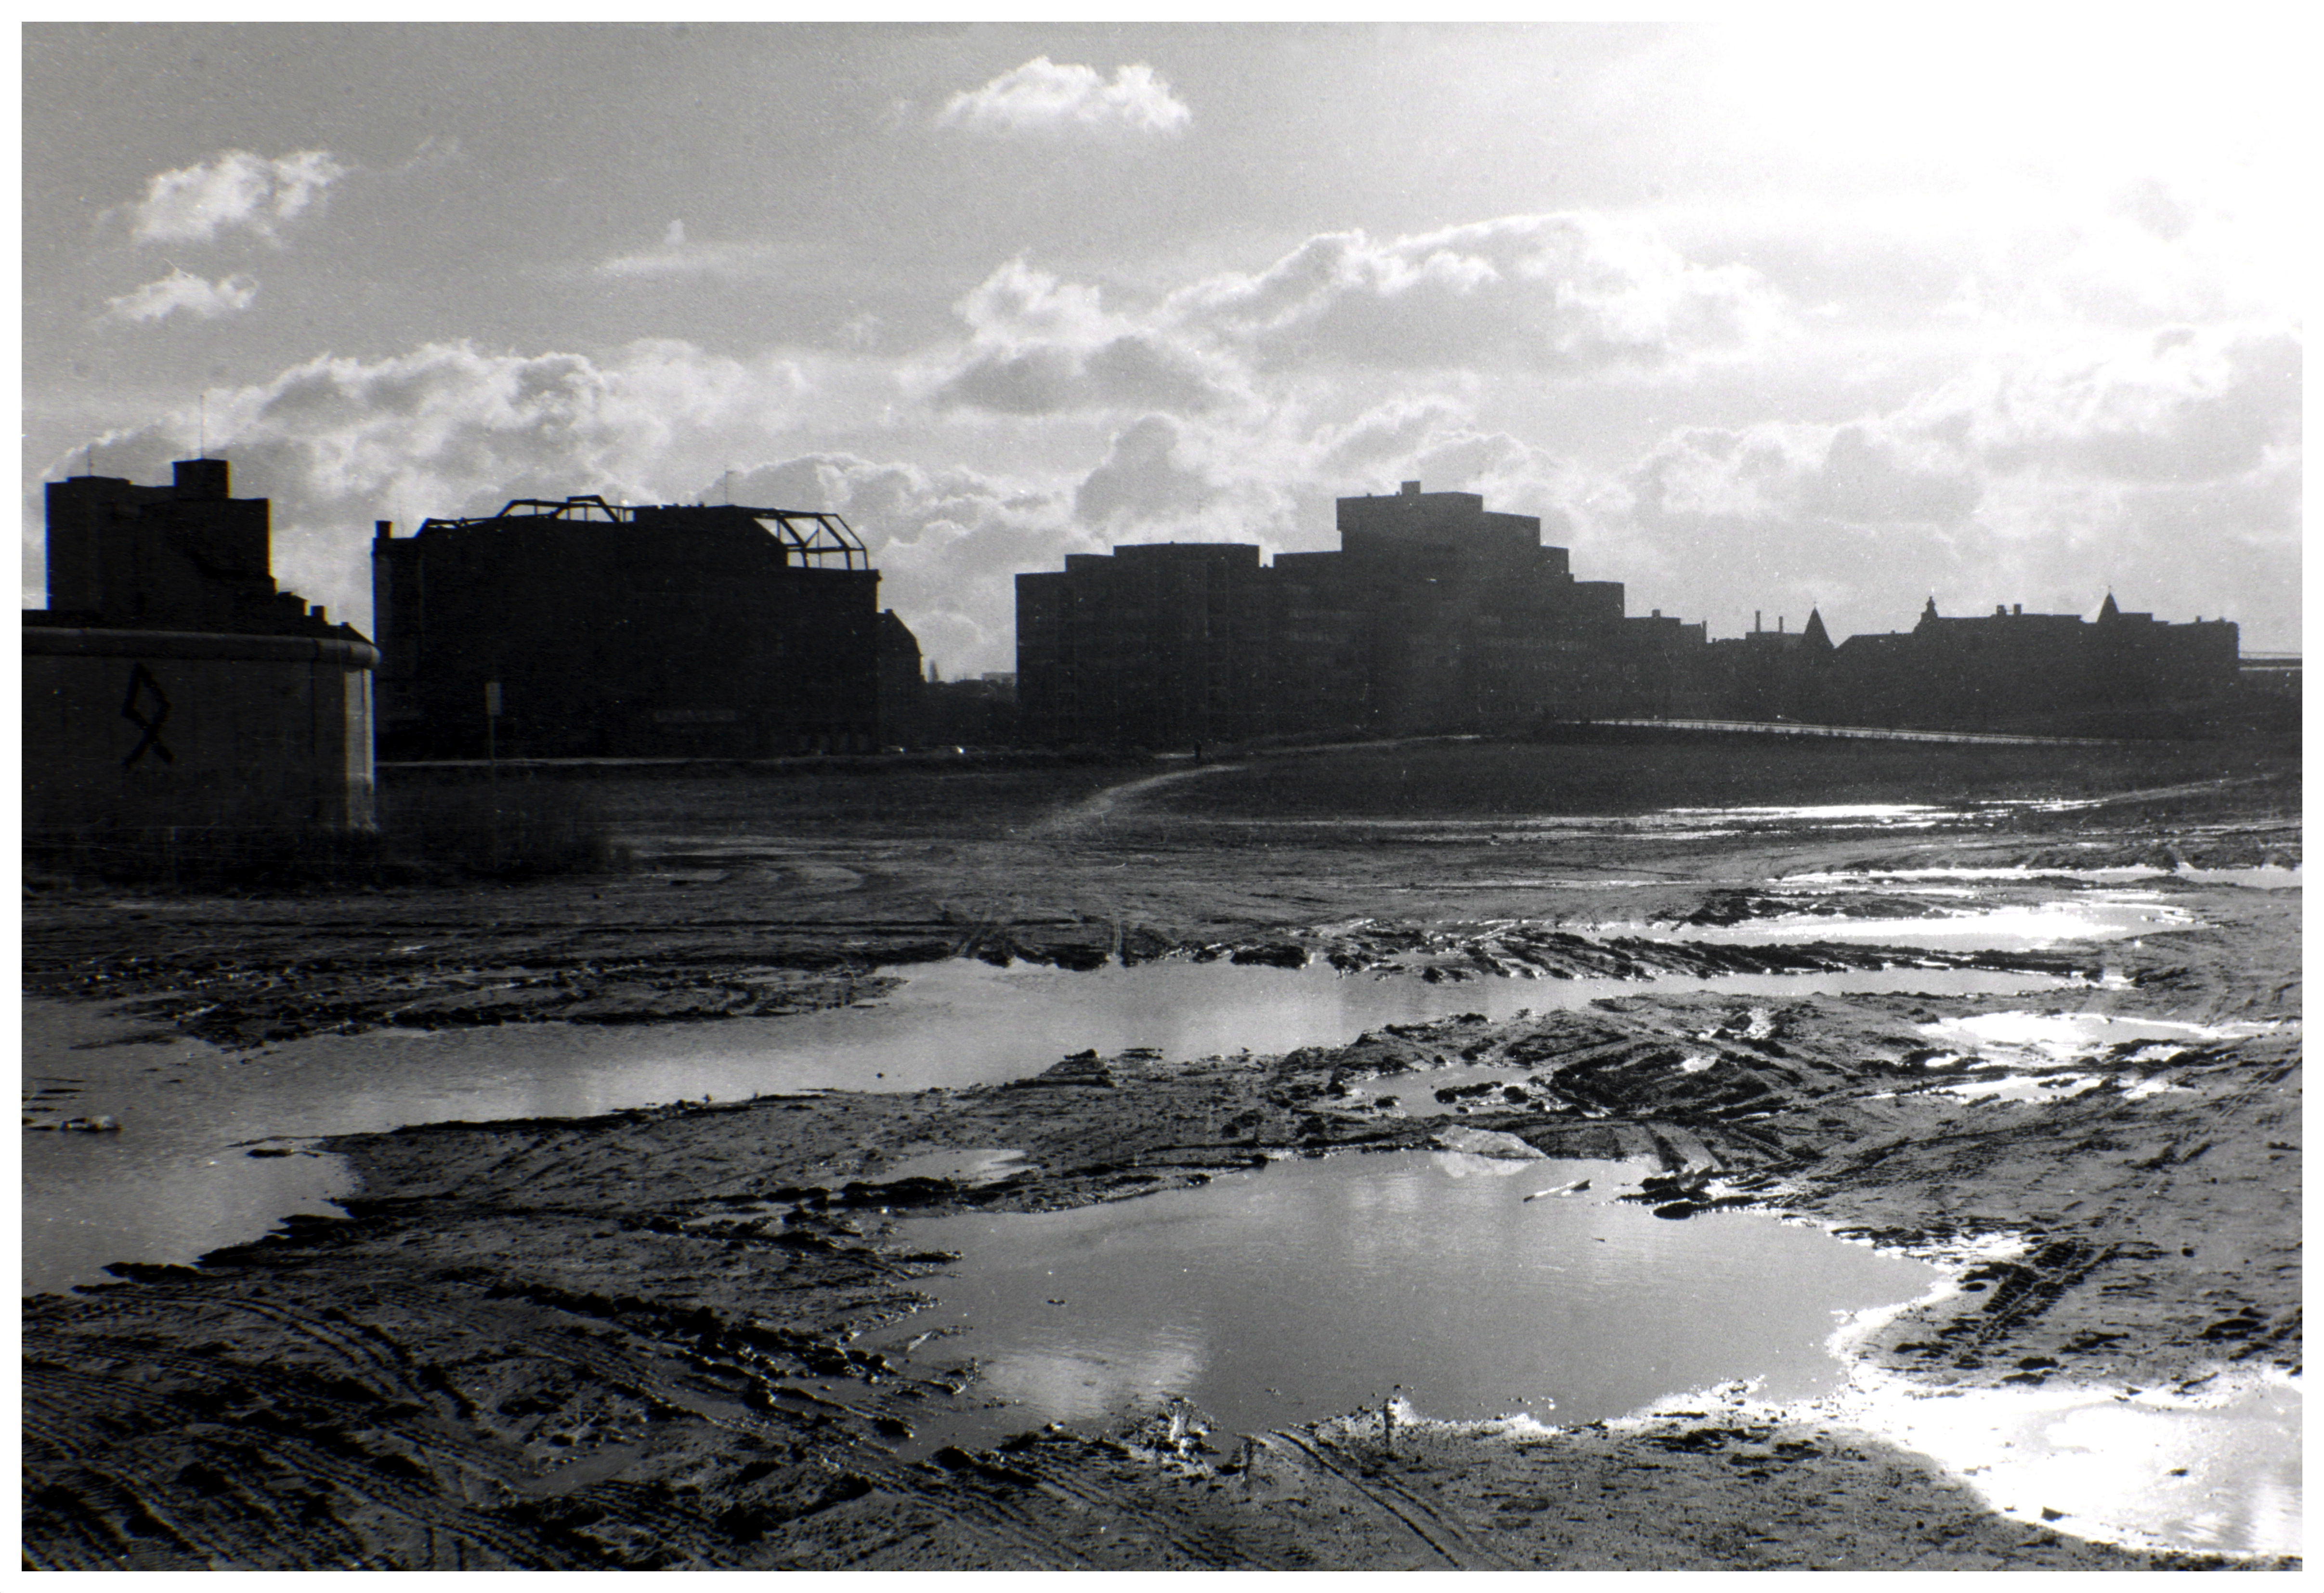 A black and white photo of an open, muddy area and buildings lining the horizon.